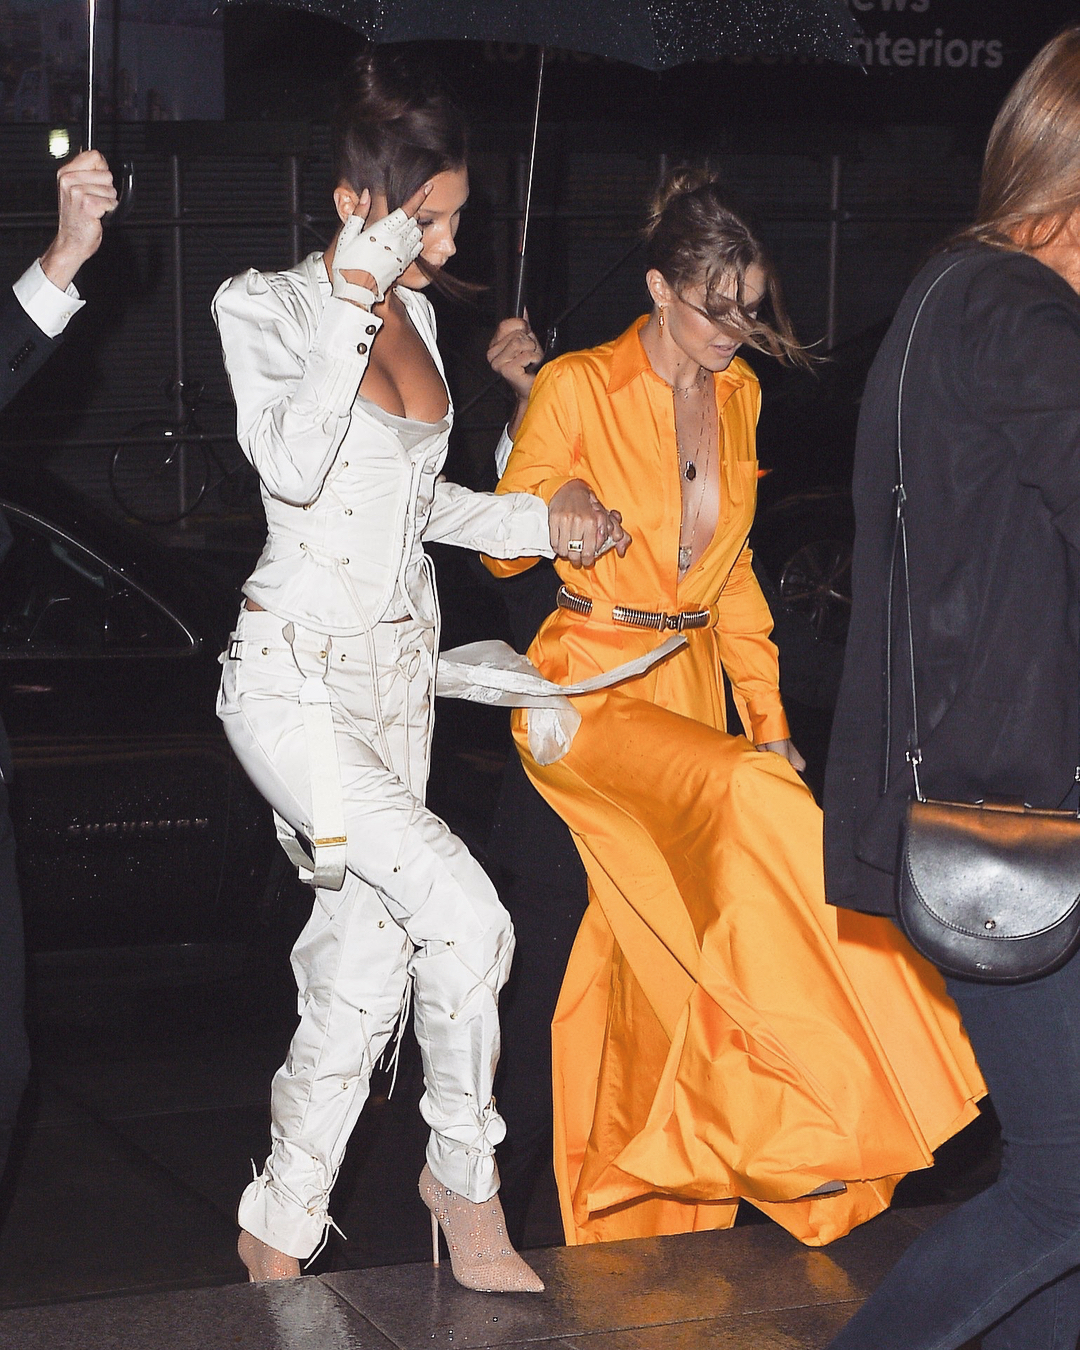 """<p>Gigi and Bella Hadid are nailing New York Fashion Week for 2018. The high-flying fashion moguls didn't hold back in the sartorial department when they stepped out for the Business of Fashion's Gala Dinner.<br /> <br /> <a href=""""https://style.nine.com.au/2018/02/12/16/25/gigi-hadid-body-shamers-new-york-fashion-week-twitter"""" title=""""Gigi"""" draggable=""""false"""">Gigi</a>, 23, and <a href=""""https://style.nine.com.au/2018/09/09/18/34/bella-hadid-harpers-bazaar-icons-party"""" title=""""Bella"""" draggable=""""false"""">Bella</a>, 21 were bold and busty in two very different styles, but both boasting generous necklines and svelte waists.<br /> <br /> Arriving at the Hotel Brooklyn Bridge, Gigi lit up the night in a canary-yellow jumpsuit by Brandon Maxwell which she paired with nude patent pumps from Le Silla.<br /> <br /> But it was the pink champagne encased in acrylic glass that really made the young model's outfit pop. The bottle was one of many bespoke accessories used in the<a href=""""https://style.nine.com.au/2018/09/10/11/39/lily-aldridge-rocks-runway-five-months-pregnant"""" title="""" Brandon Maxwell fashion show"""" draggable=""""false""""> Brandon Maxwell fashion show</a> recently, for which the Hadid sisters walked the runway.<br /> <br /> Meanwhile, Gigi's baby sis, Bella took grunge sports luxe to a whole new level.<br /> <br /> The youngest Hadid sister gushed spunk in a sexy Sporty Spice- style getup by Andreas Kronthaler for Vivienne Westwood. Bella added a touch of sparkle with glittery sock heels from Le Silla. <br /> <br /> This isn't the first time Gigi and Bella have made jaws drop with their savvy style. </p> <p>Scroll through to see all the times the Hadid sisters have flaunted their fashion flair together.</p>"""